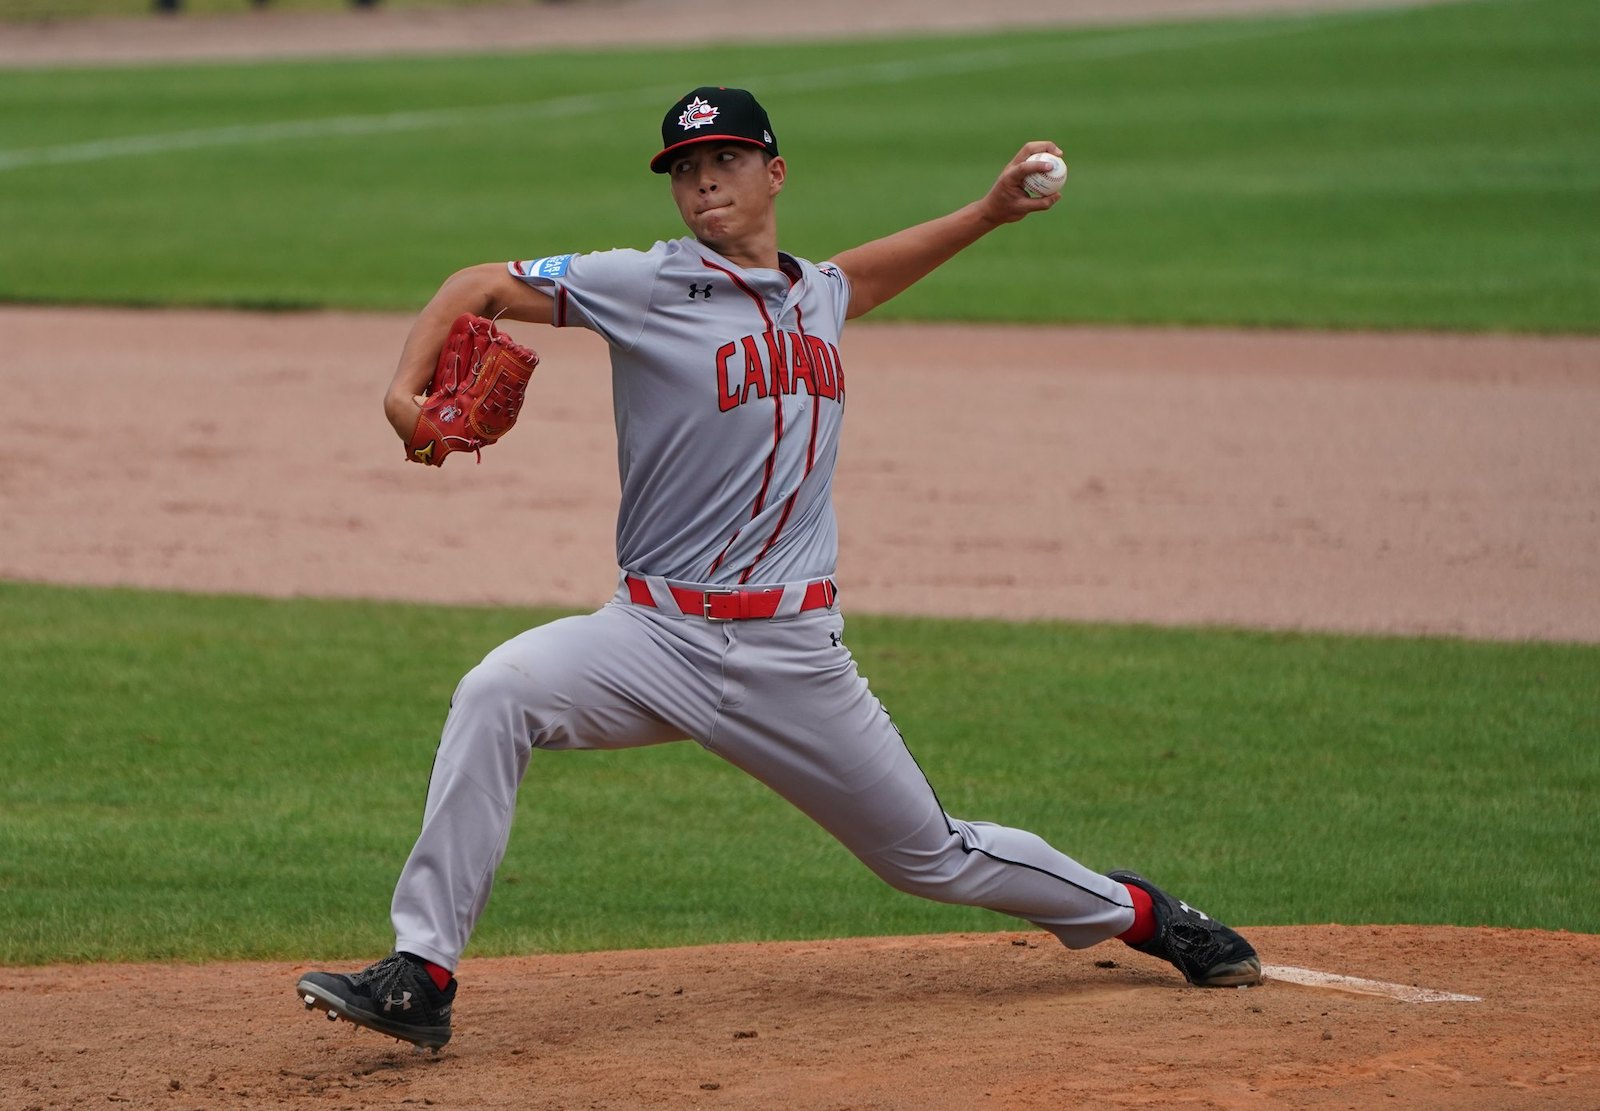 U-18 Baseball World Cup: Canada swings bats in loss to South Korea